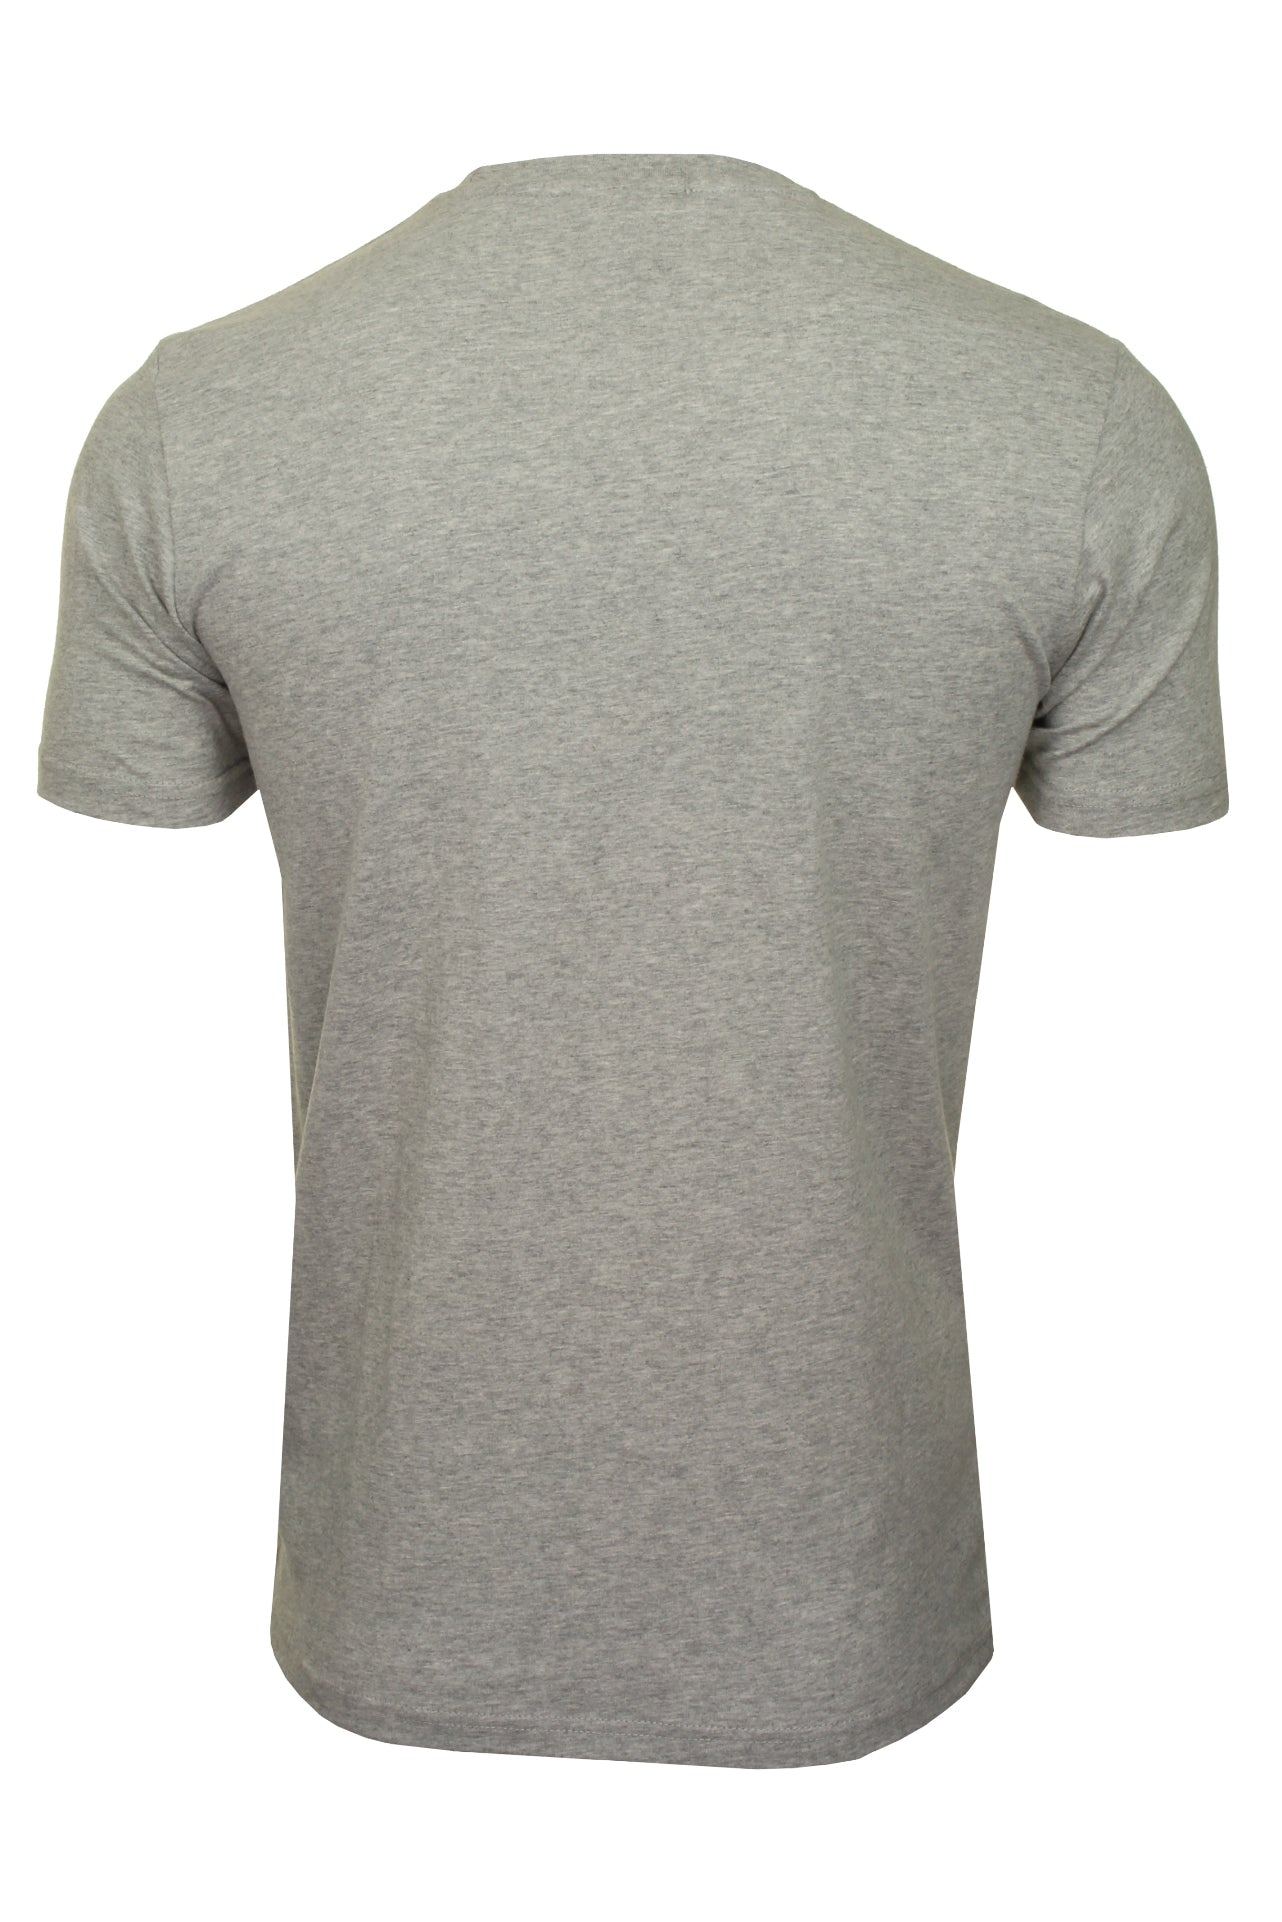 Ellesse Mens Logo Front Crew Neck T-Shirt 'PRADO' - Short Sleeved_02_Shc07405_Grey Marl